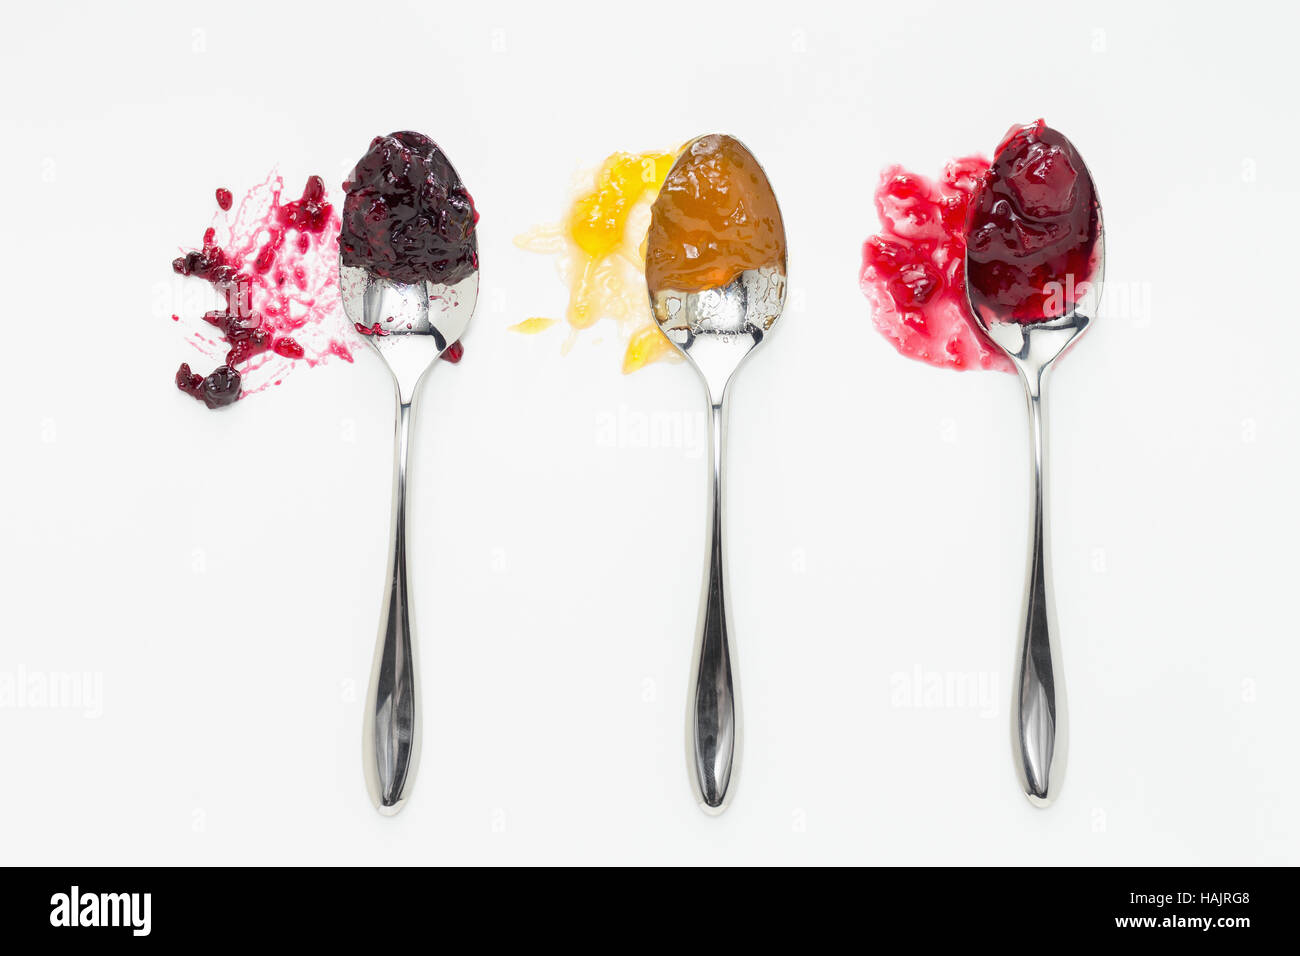 Mixed berry, apricot and sour cherry jam on spoons - Stock Image